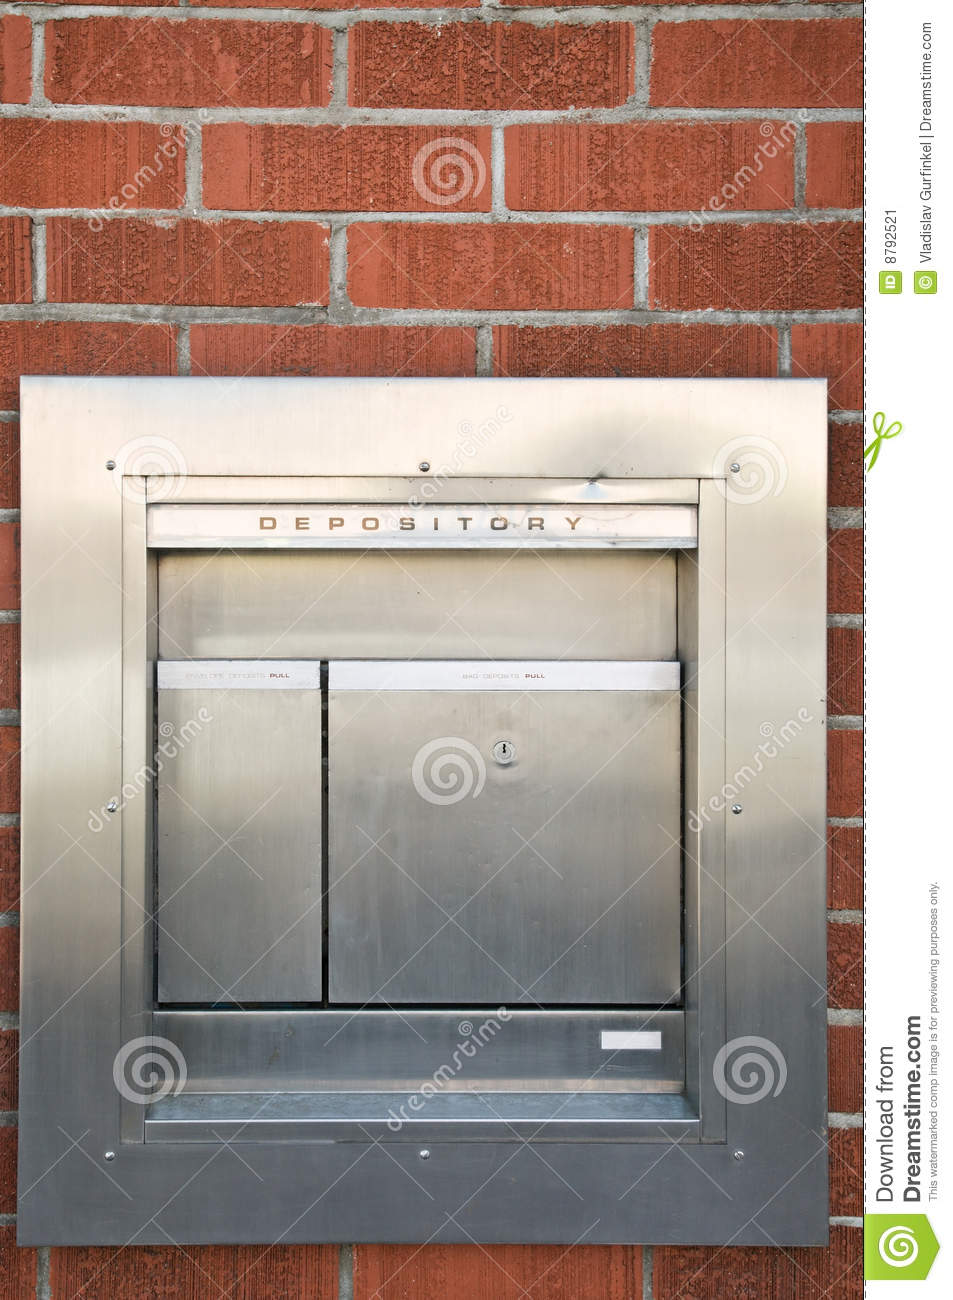 Stainless Steel Depository Box Stock Image Image 8792521